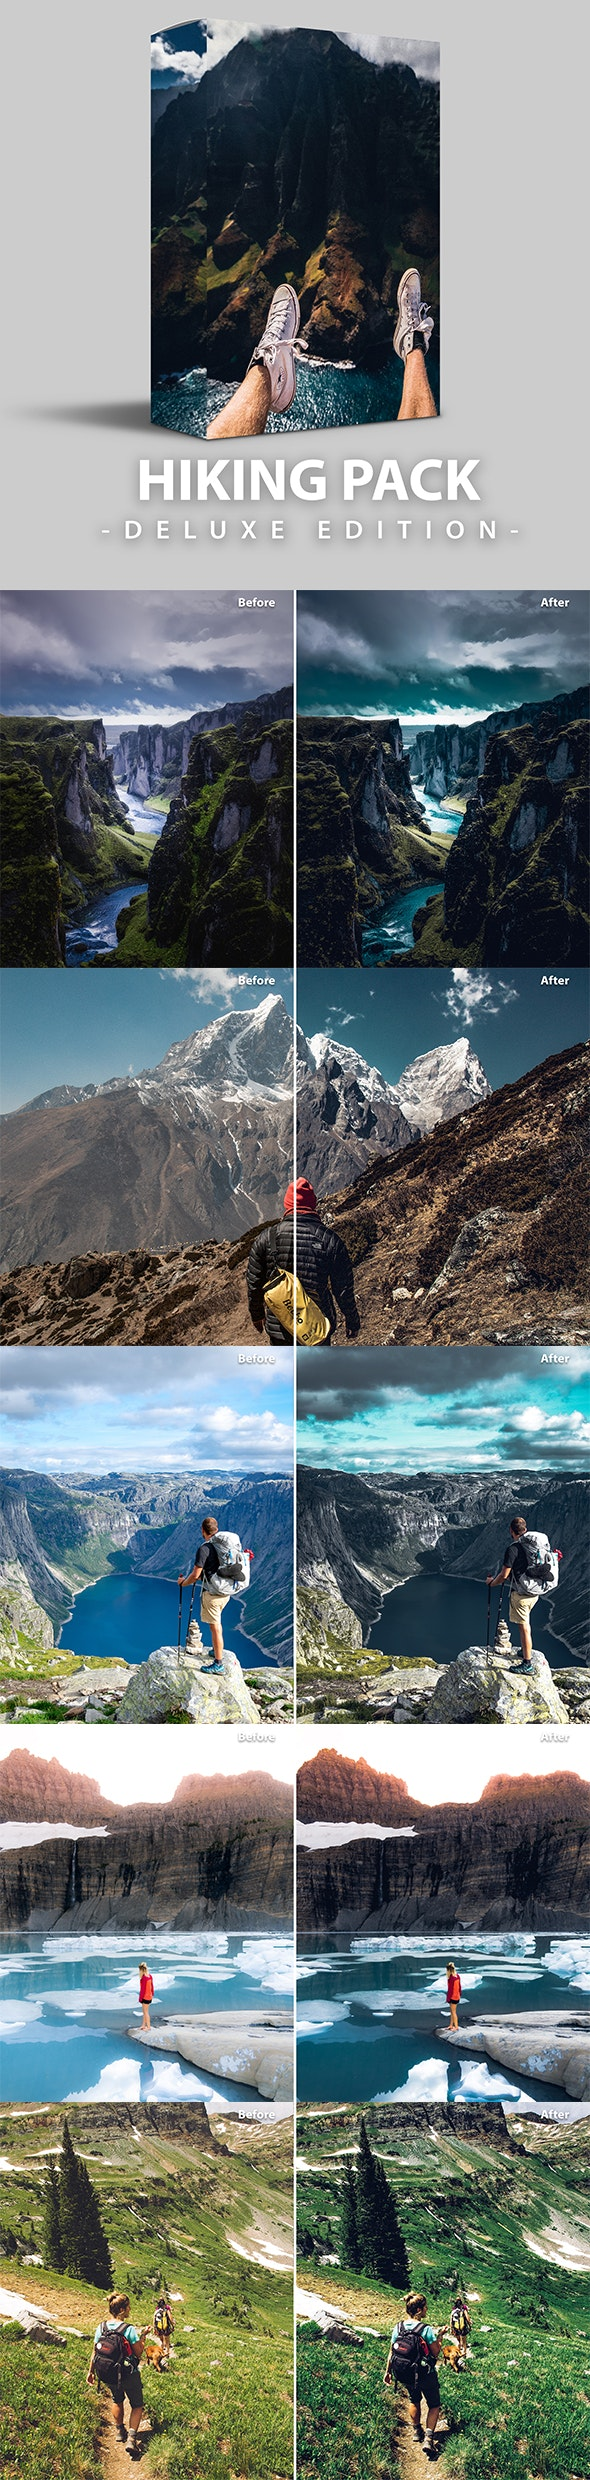 Hiking Pack | Deluxe Edition for mobile and PC - Landscape Lightroom Presets